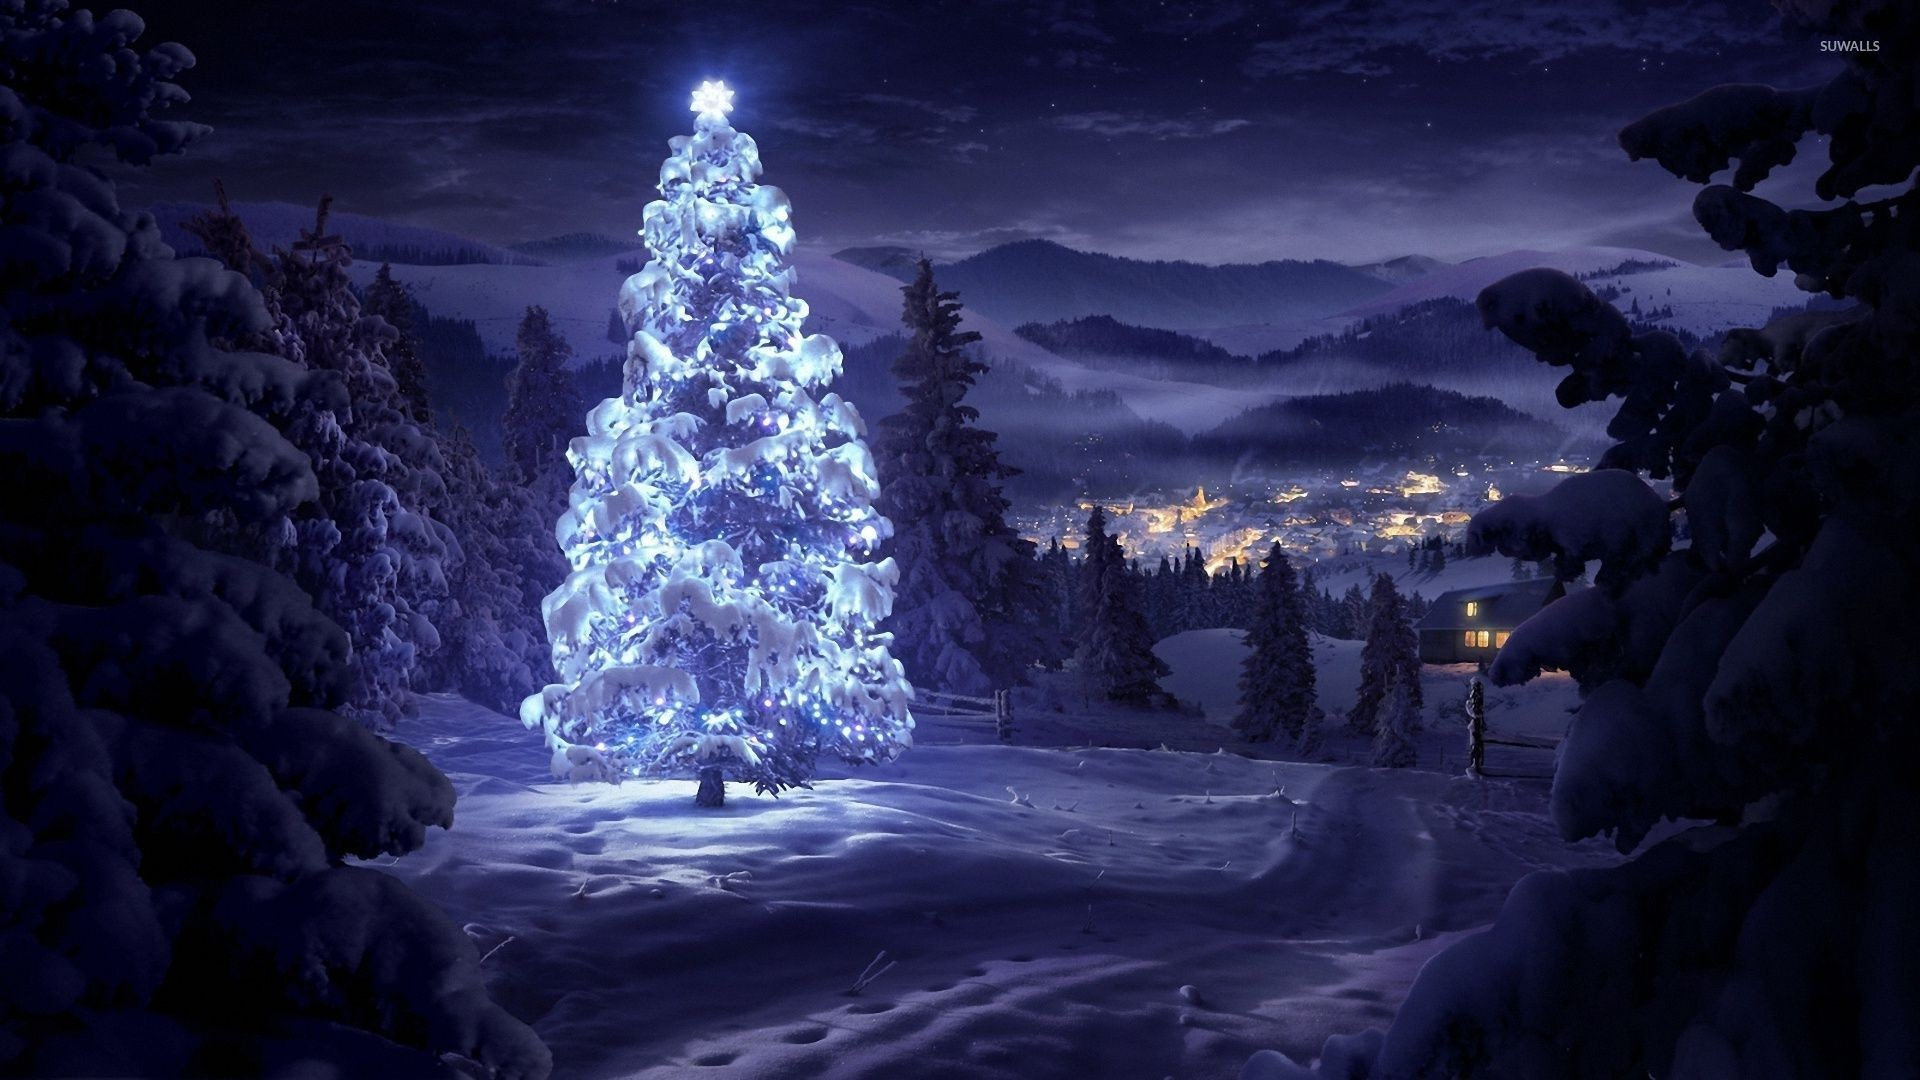 1920x1080 Bright star on top of a beautiful snowy tree in the forest wallpaper   jpg